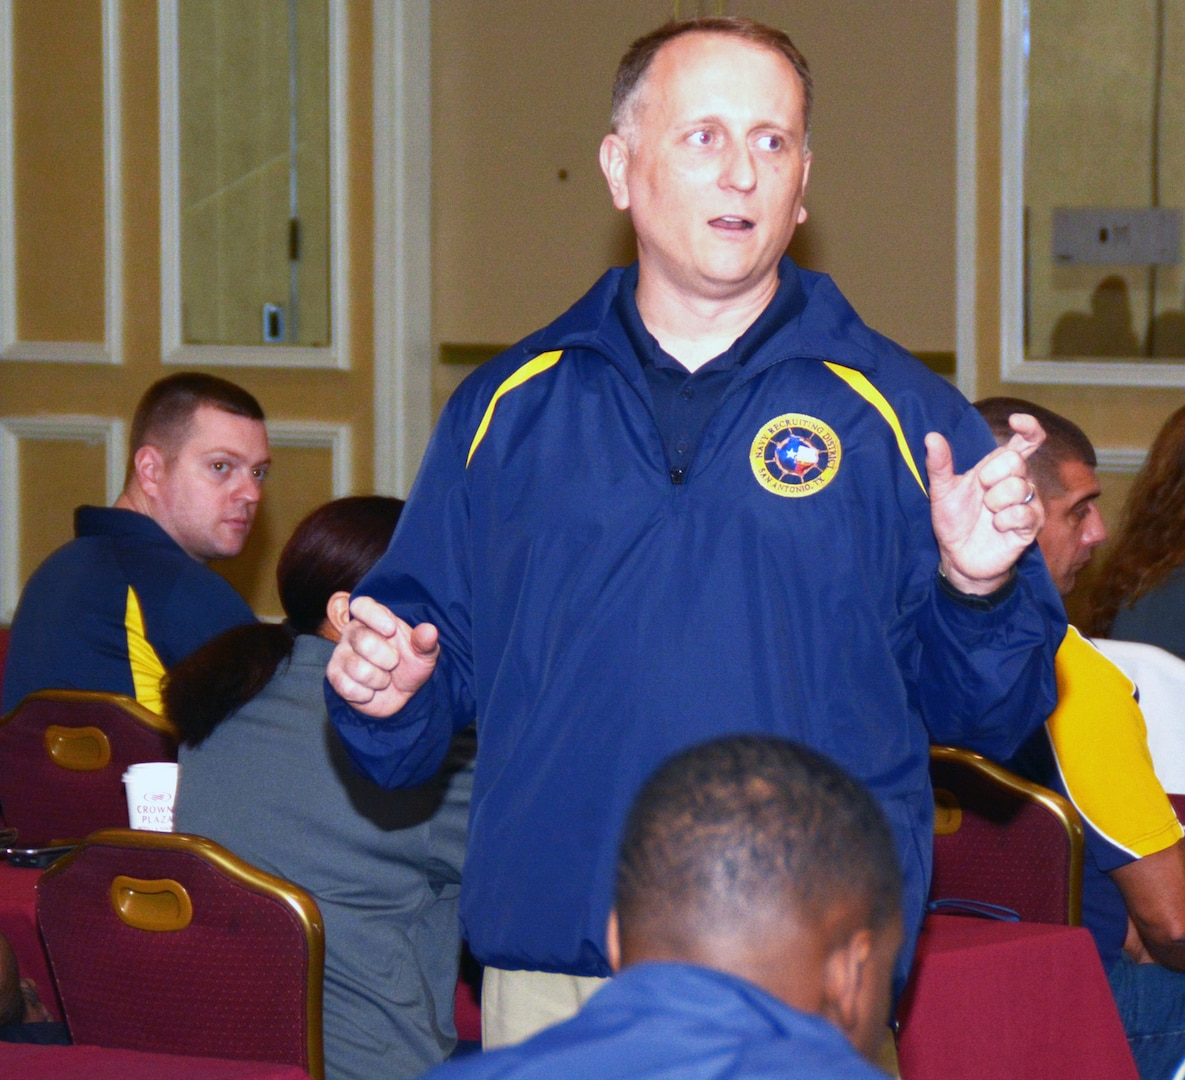 Cmdr. Jeffrey Reynolds, commanding officer of Navy Recruiting District San Antonio, addresses his Sailors and support personnel prior to the kick-off of Operational Stress Control training during the annual district training meeting held at the Crowne Plaza Hotel in Austin Dec. 19. More than 250 recruiters, support personnel and their spouses attended the training where facilitators of the Navy's 21st Century Sailor office provided attendees with support networks, programs, resources, training, and skills needed to overcome adversity and thrive.